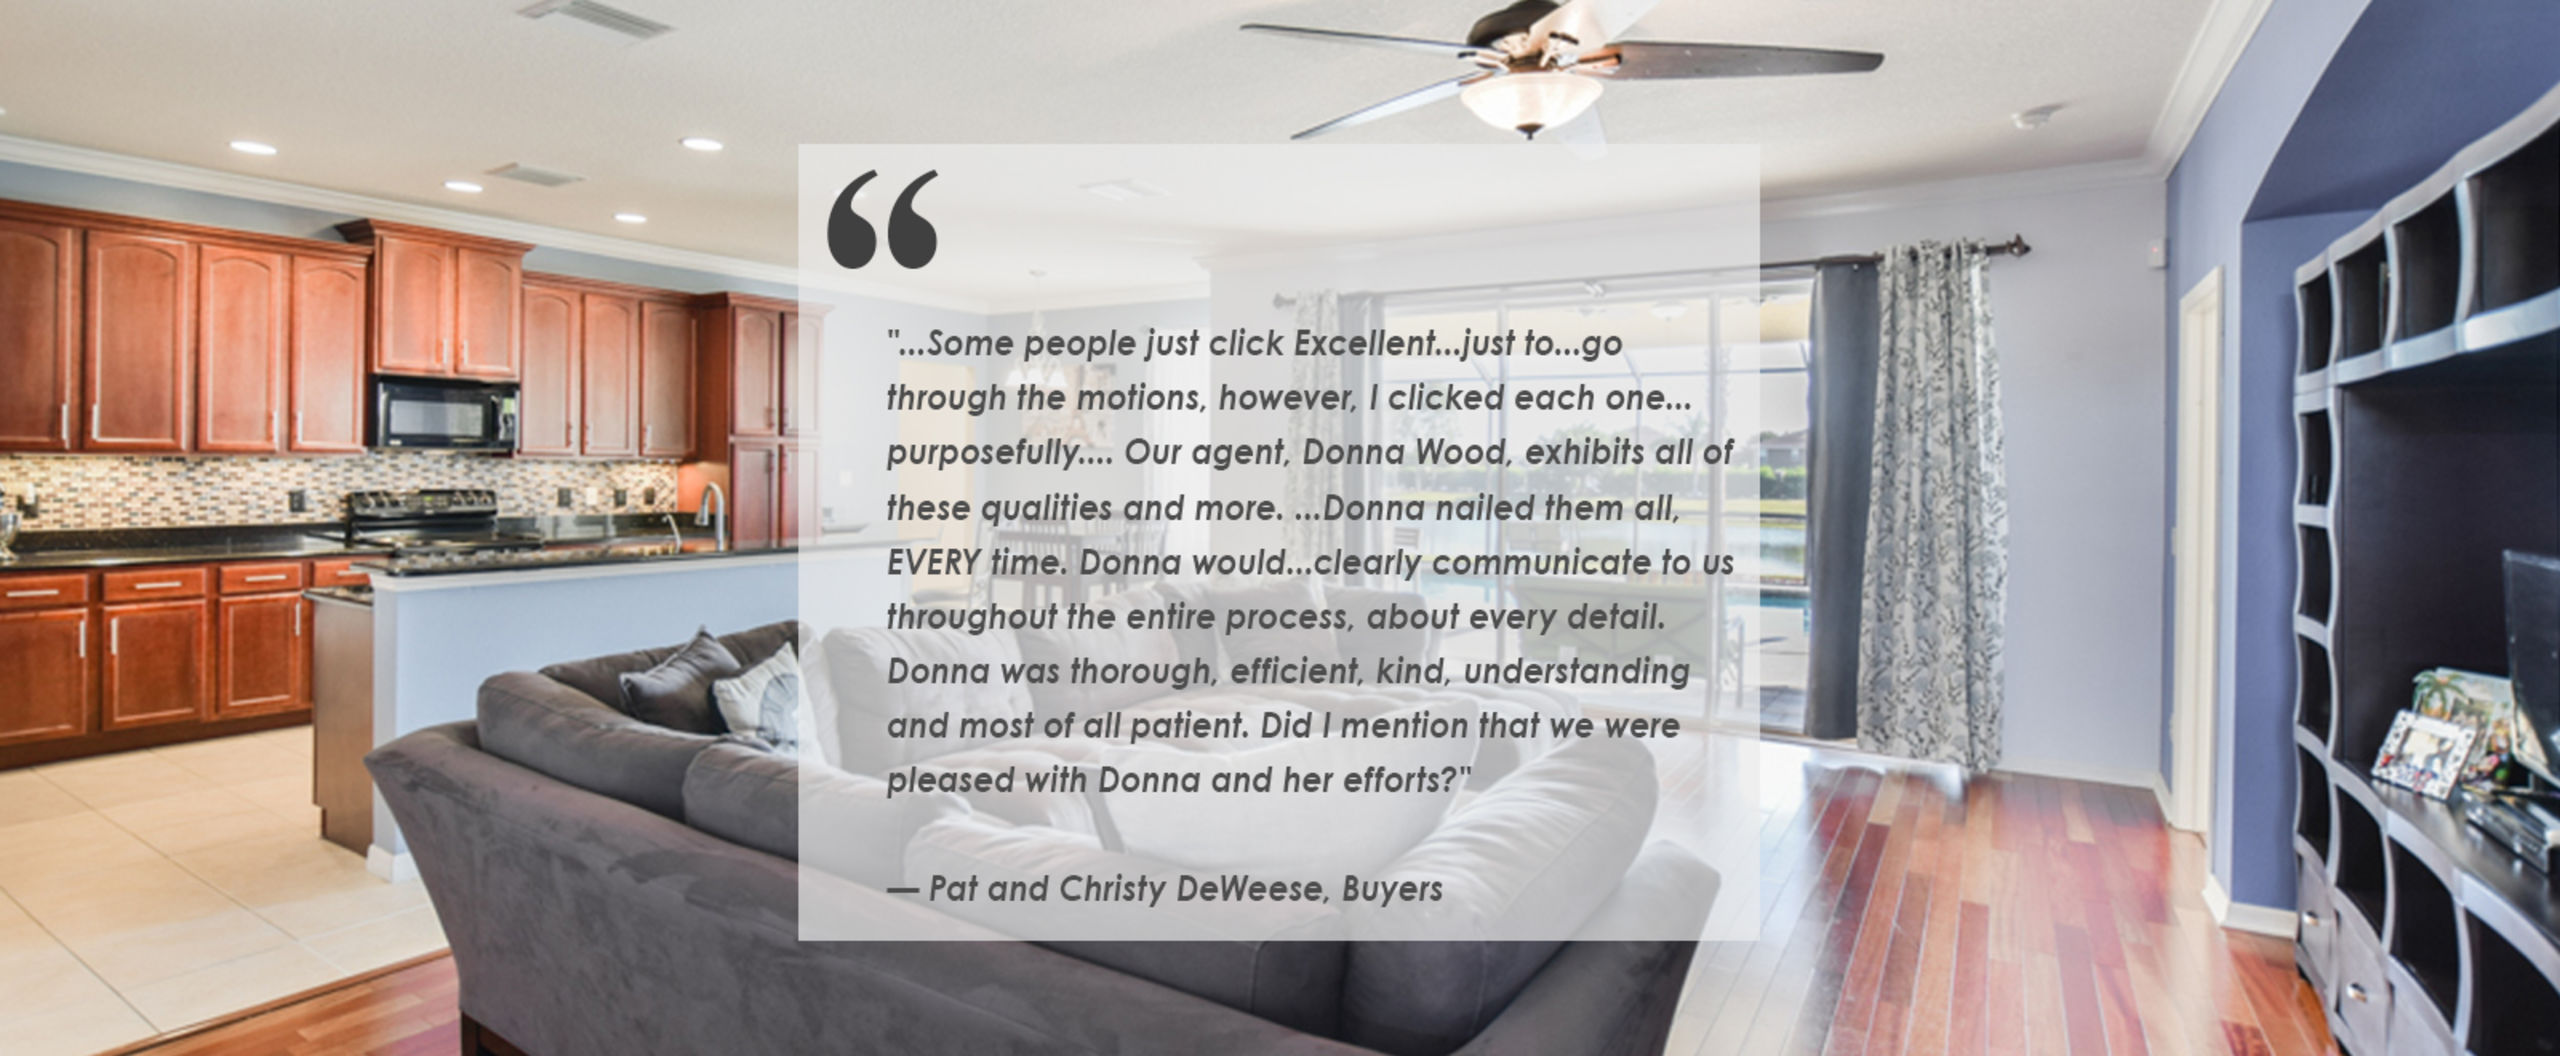 Click for more testimonials!